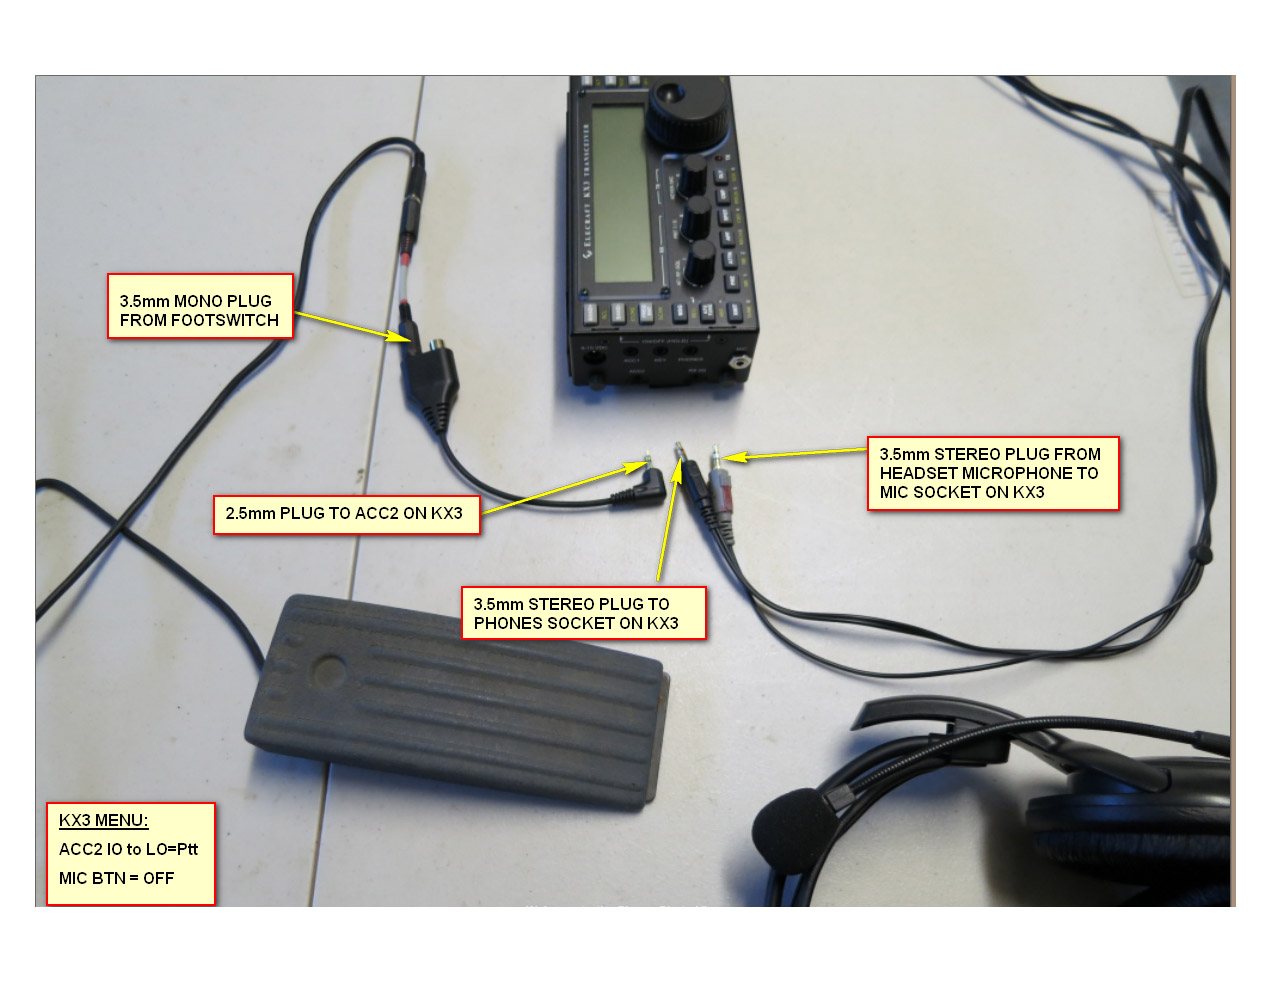 hight resolution of wiring a footswitch for use with a computer type headset on the kx3